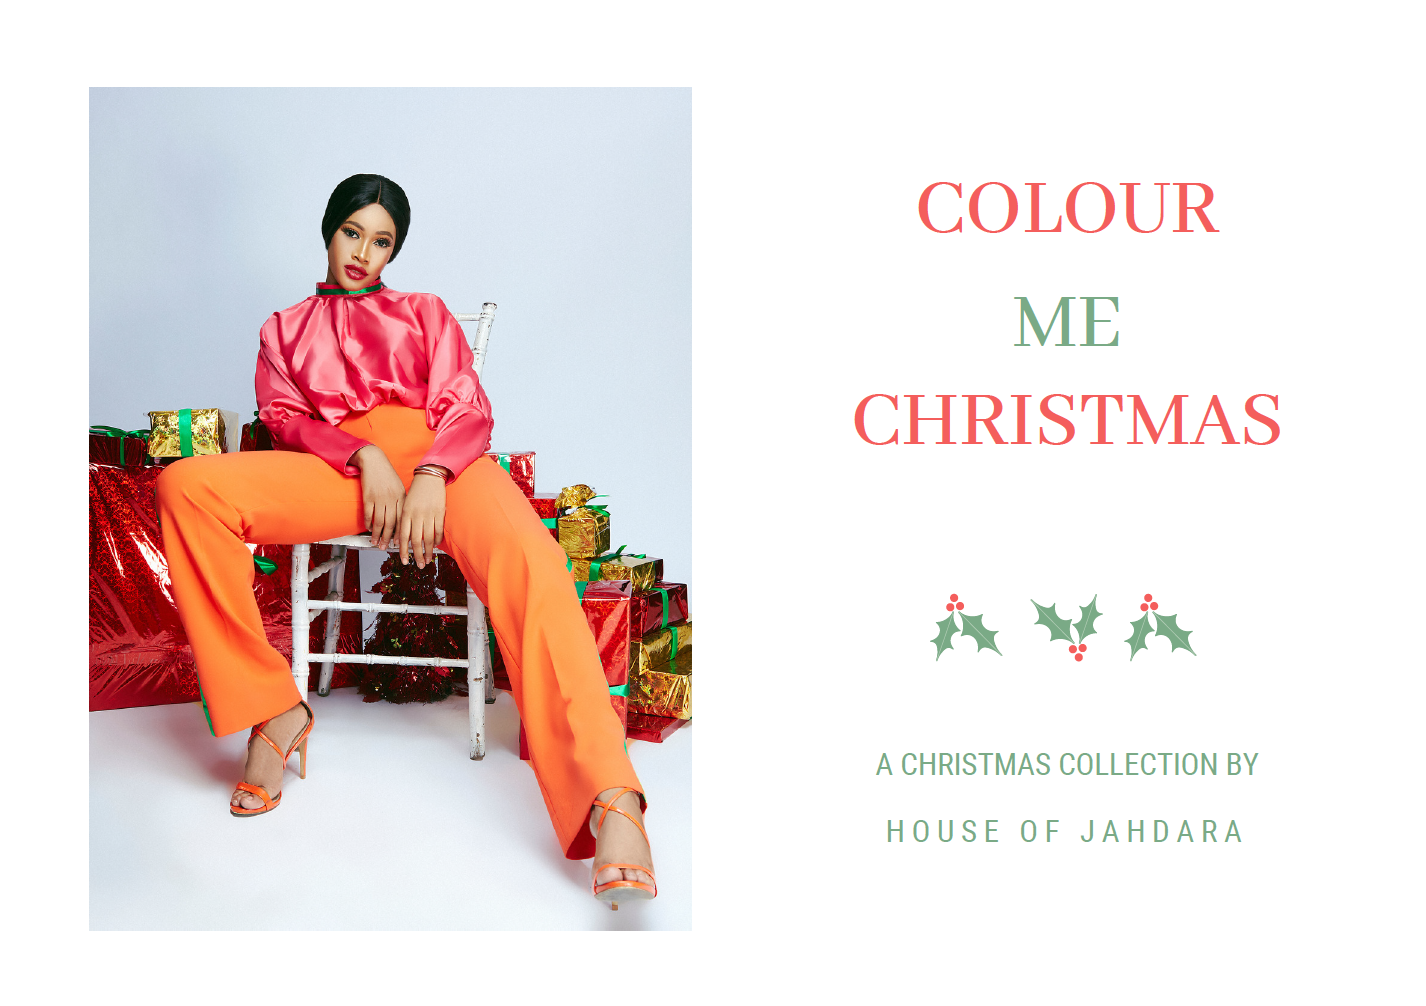 All The Colors Are Out For House of Jahdara Christmas Collection!